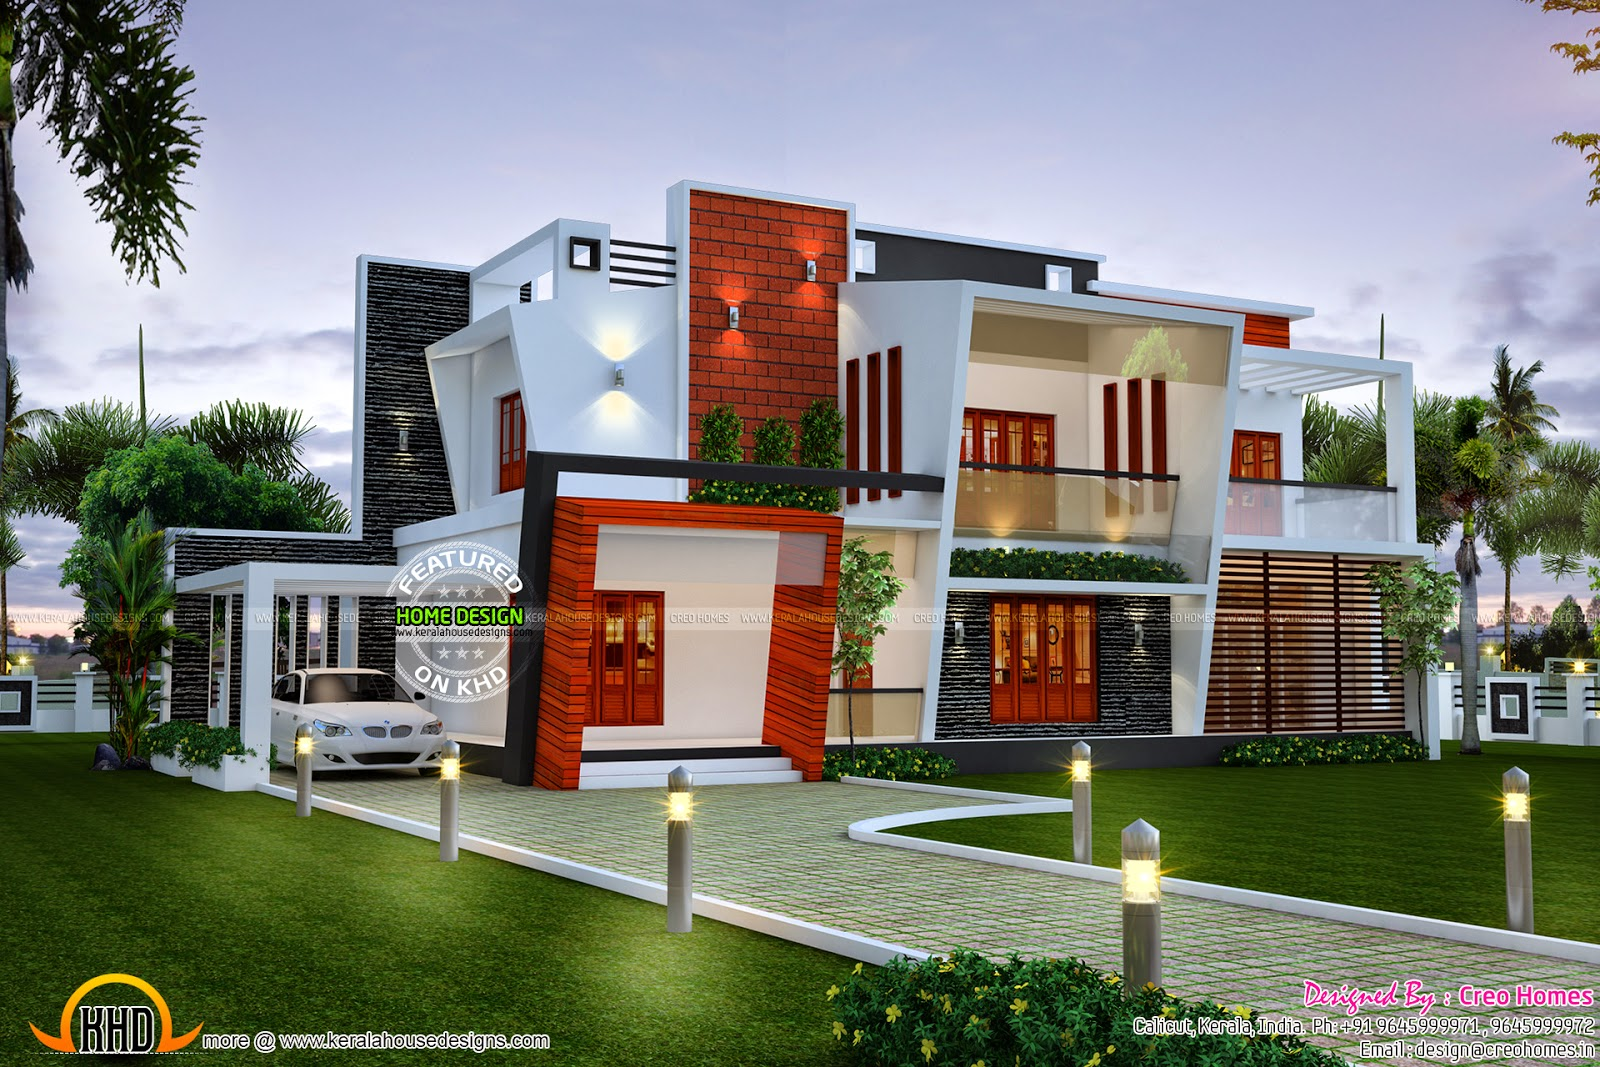 Decorating Home Front Elevation Design Images Home Design Fireplace besides 6 Bedroom House Plans together with Villa Borguese 6431 further Home designs likewise Luxurious Mansion Home In Kerala. on 4 square house plans